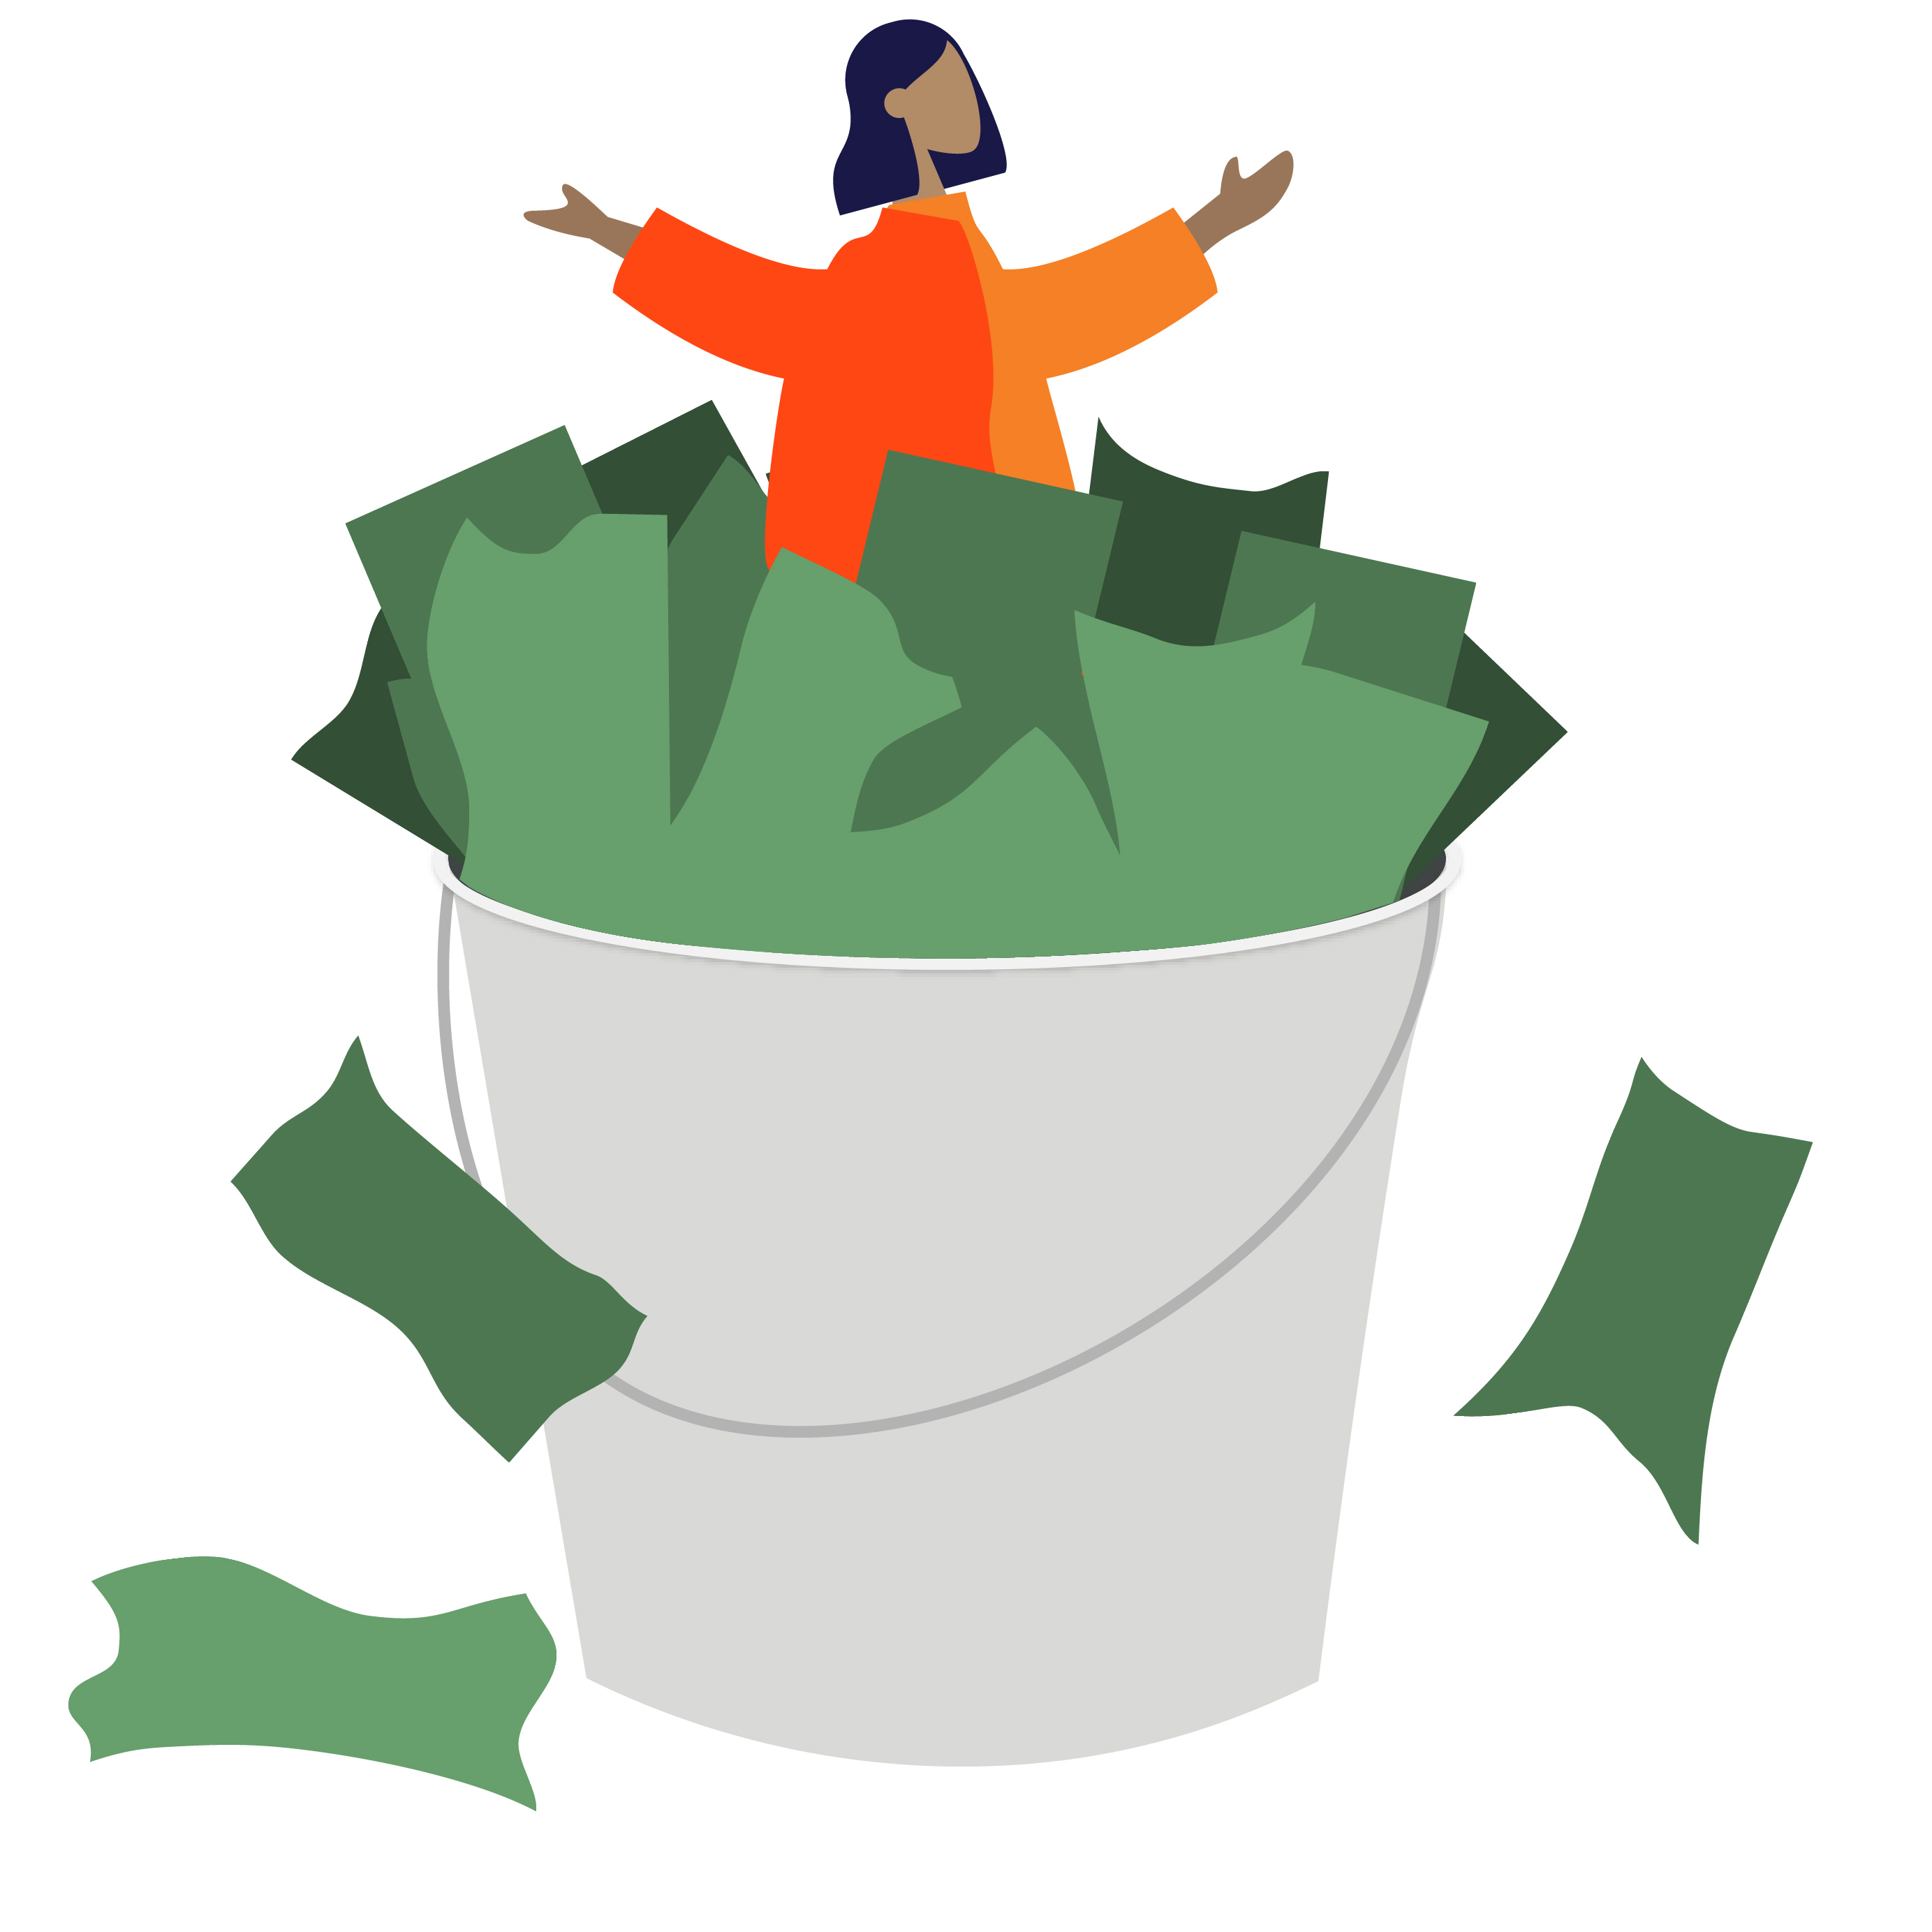 Student sits in a bucket full of dollar bills